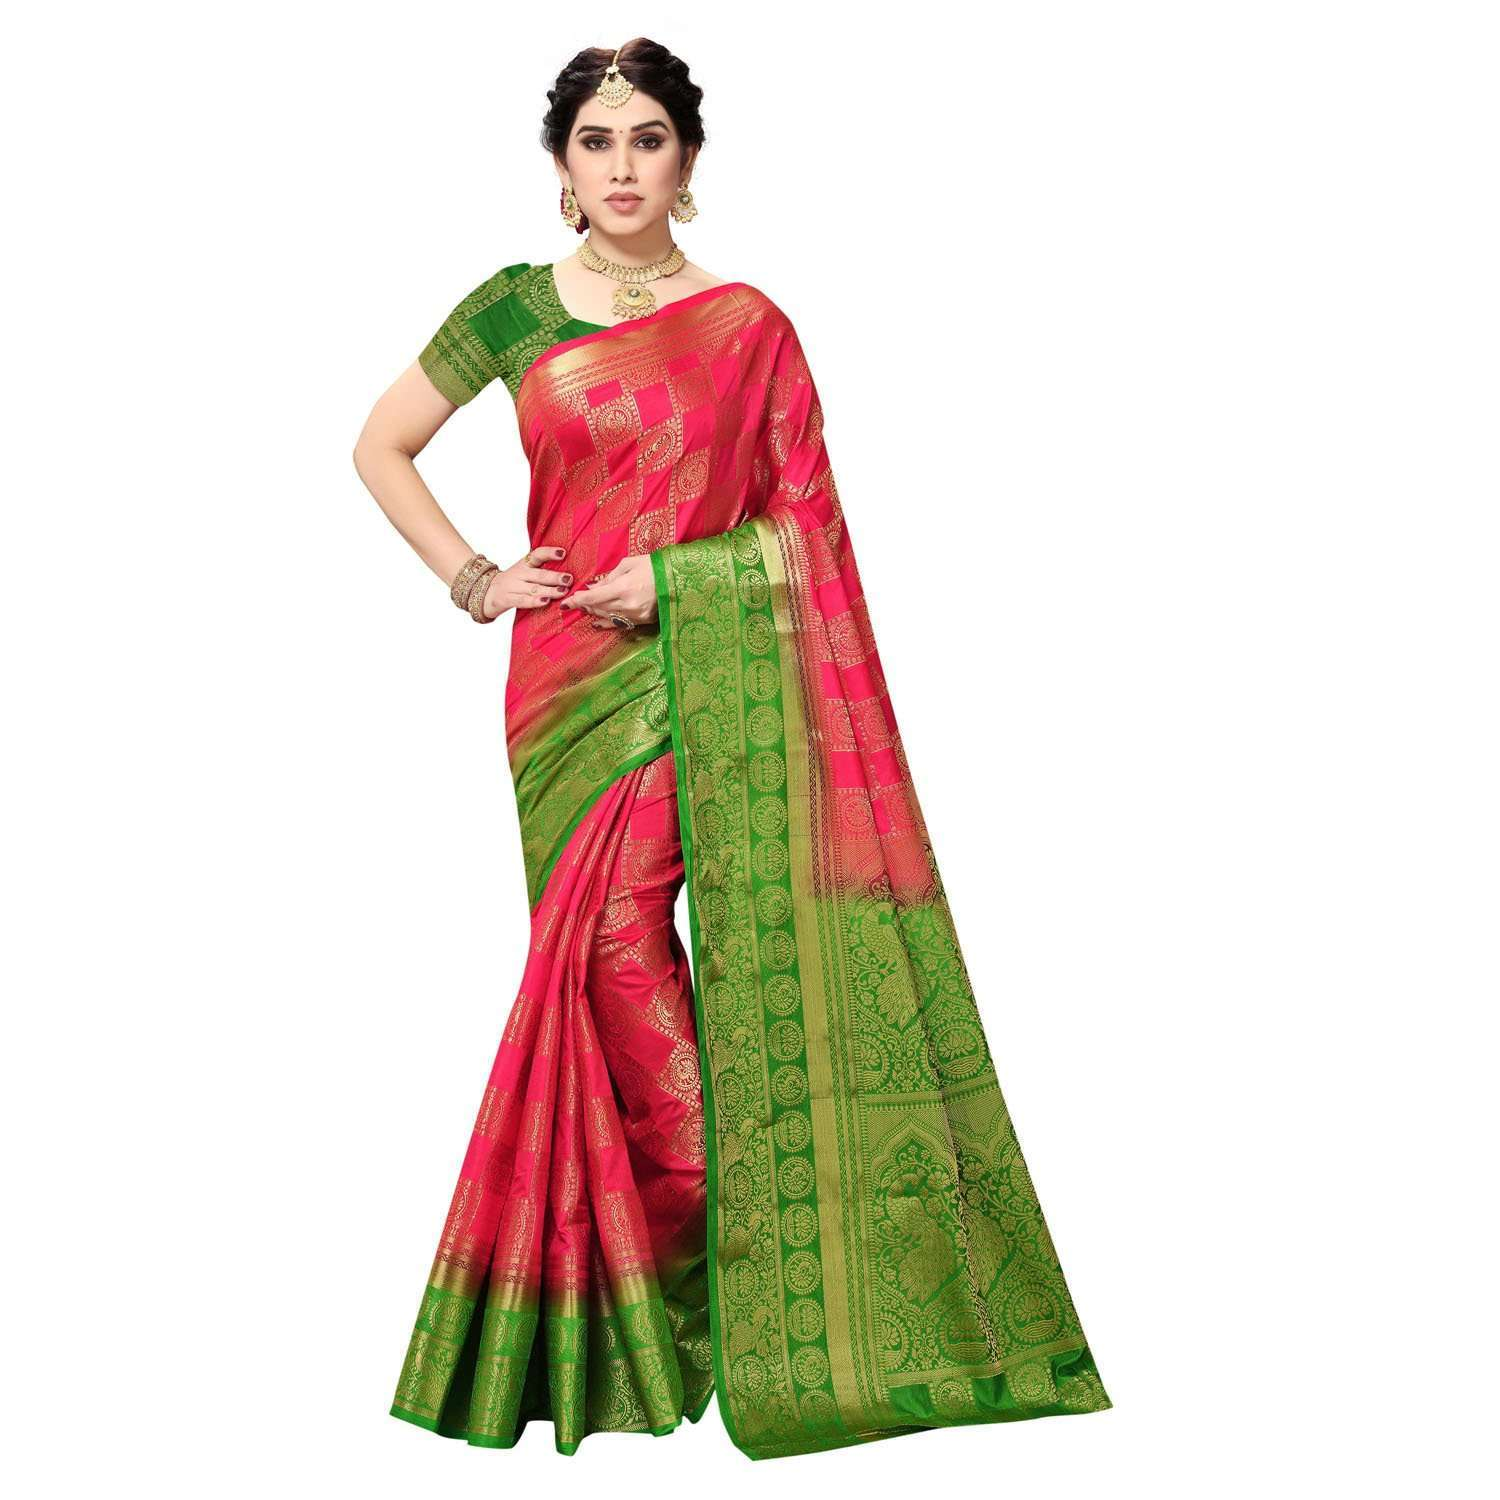 arars Women's Kanchipuram Pattu banarasi Silk Saree With Blouse (518_strawberry&green )